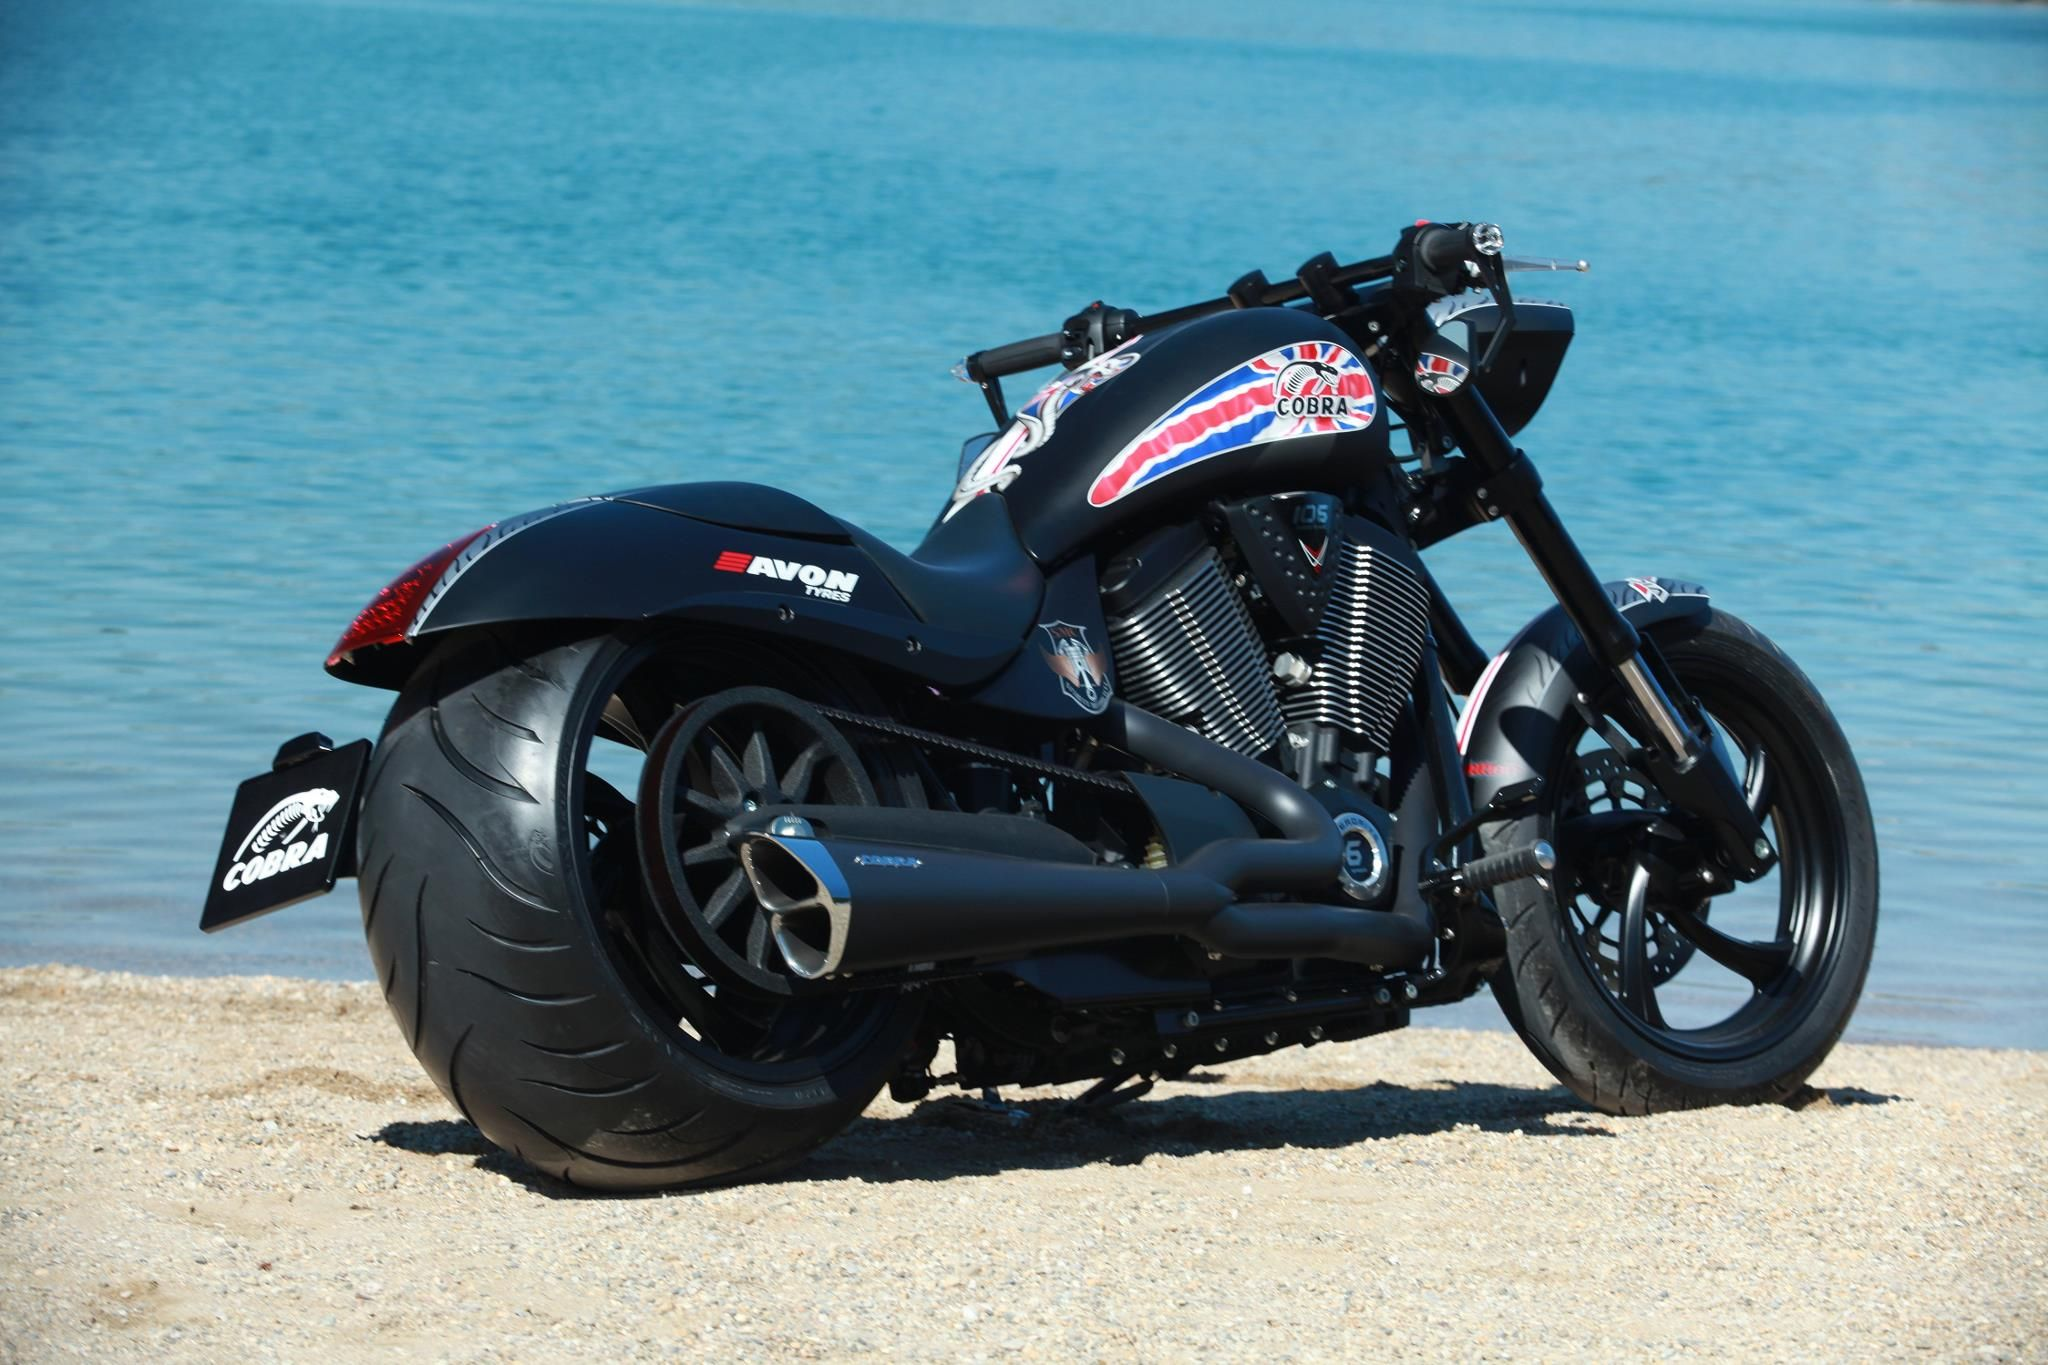 Styrian Motorcycles Victory Motorcycle Parts From Austria